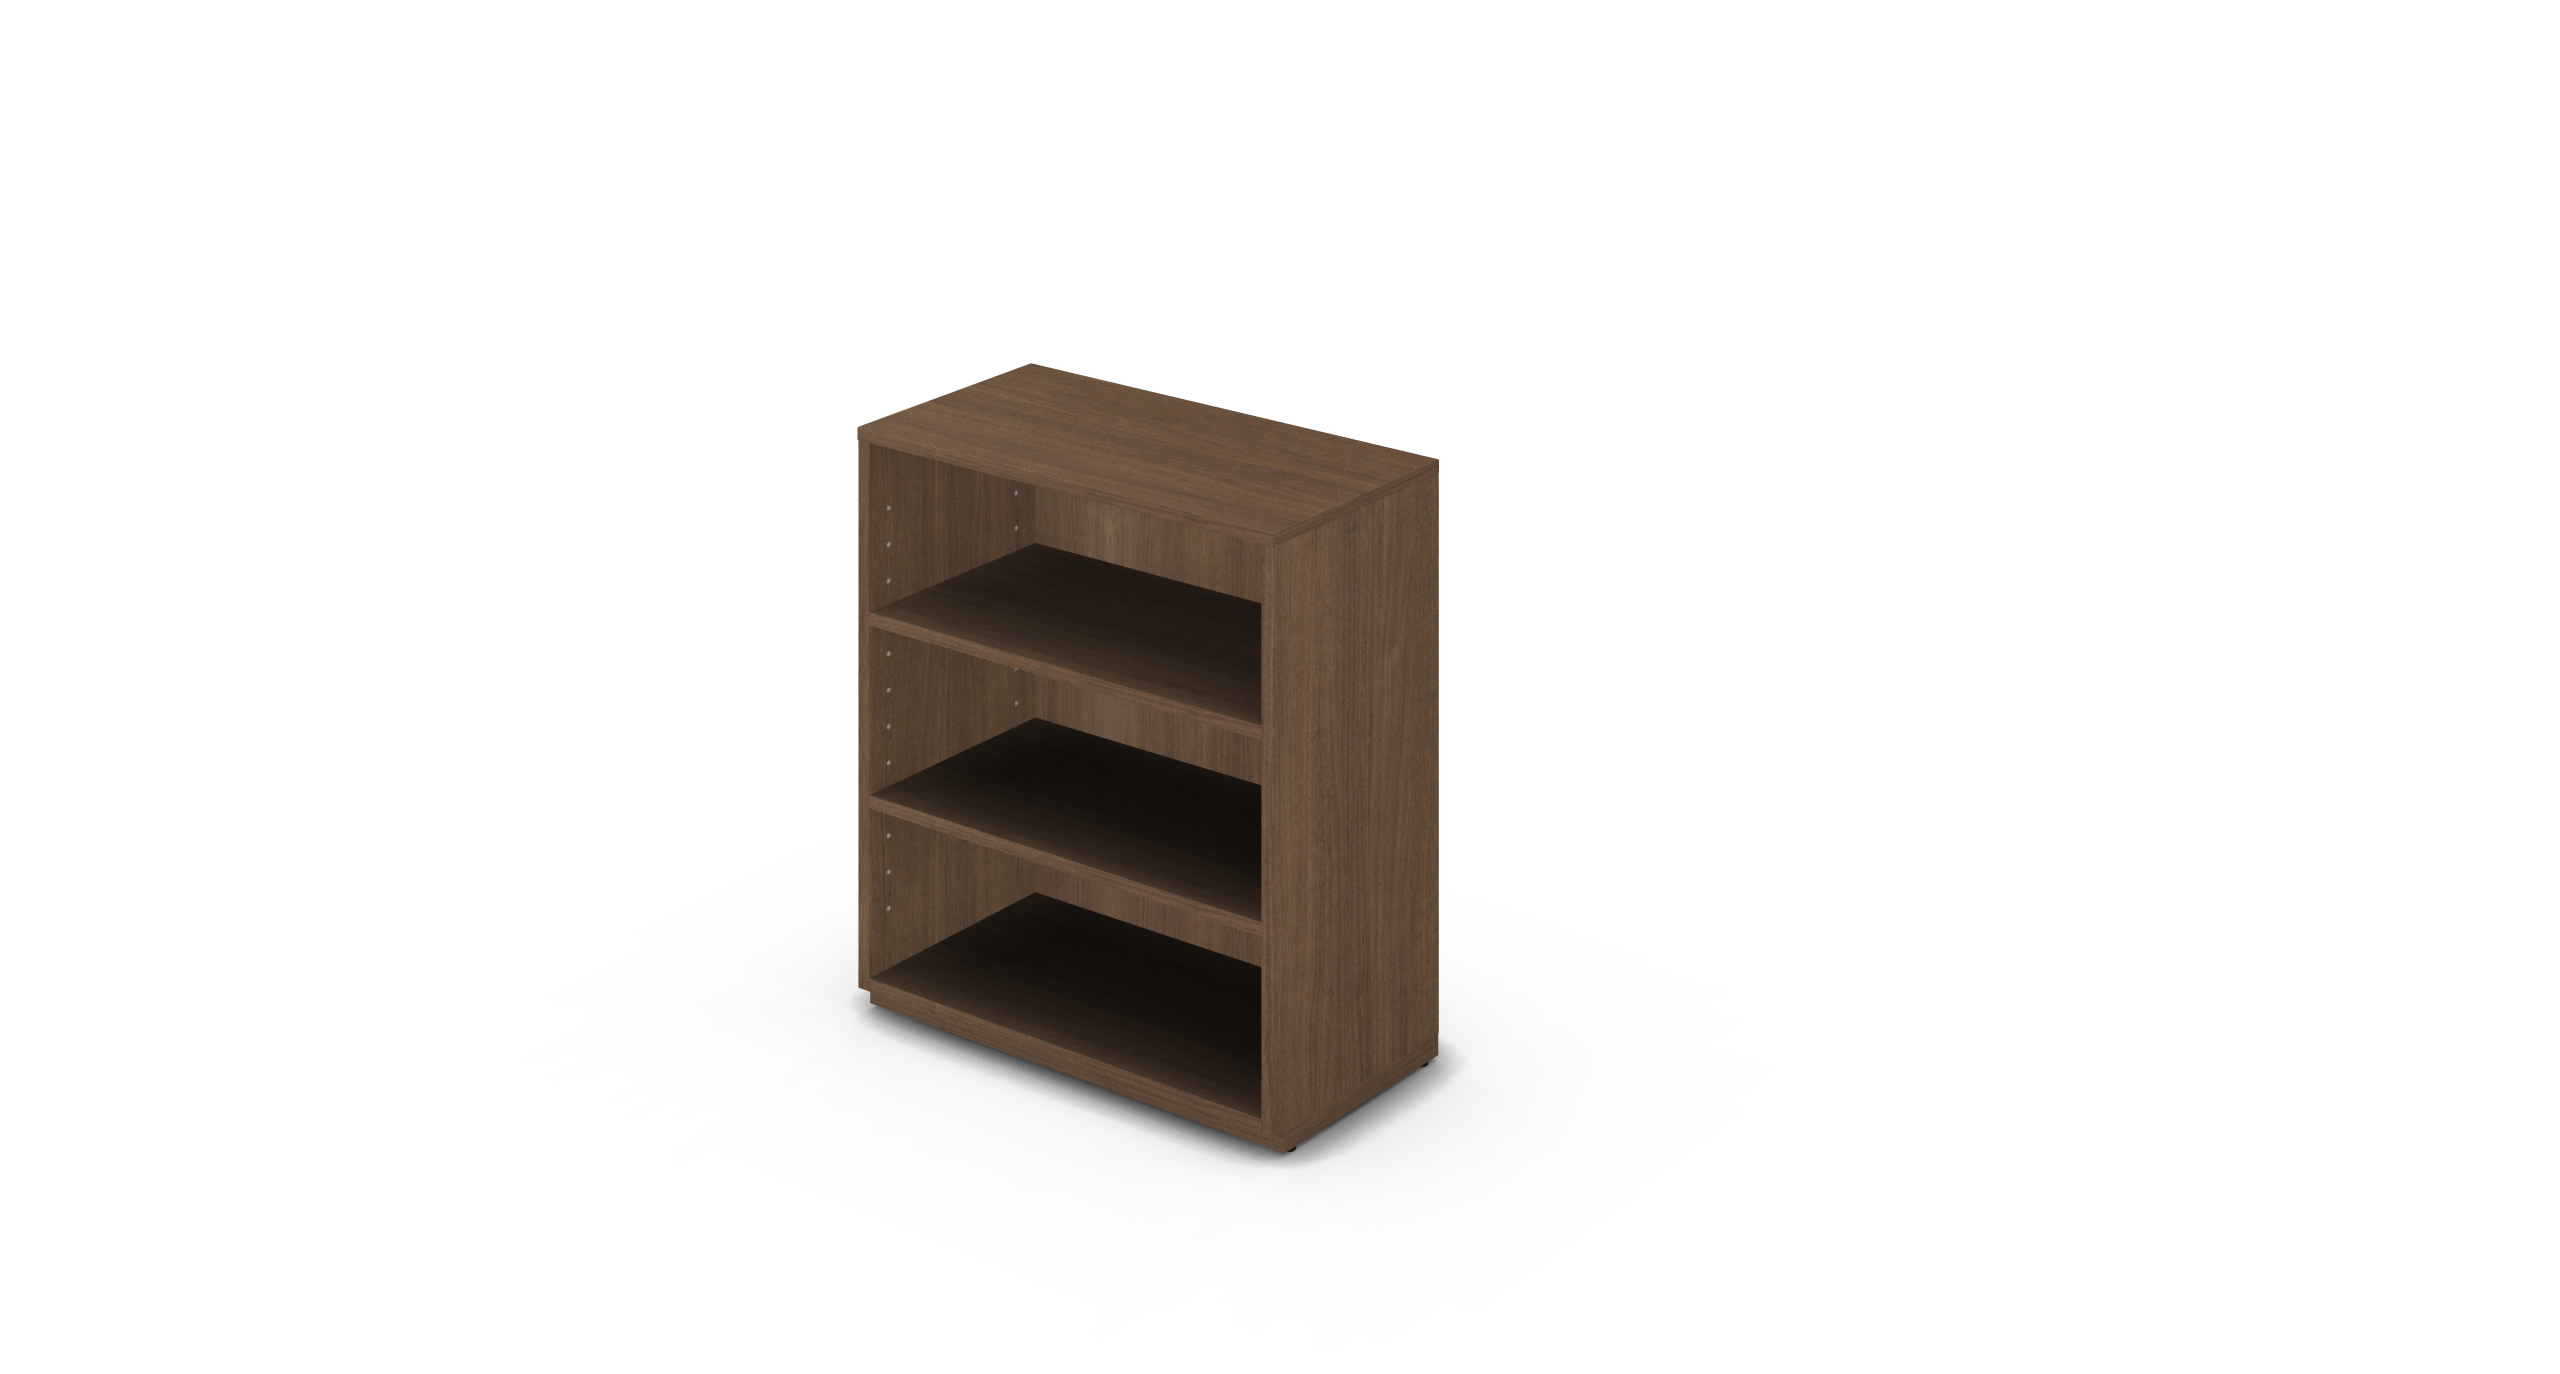 Shelf_900x450x1125_Walnut